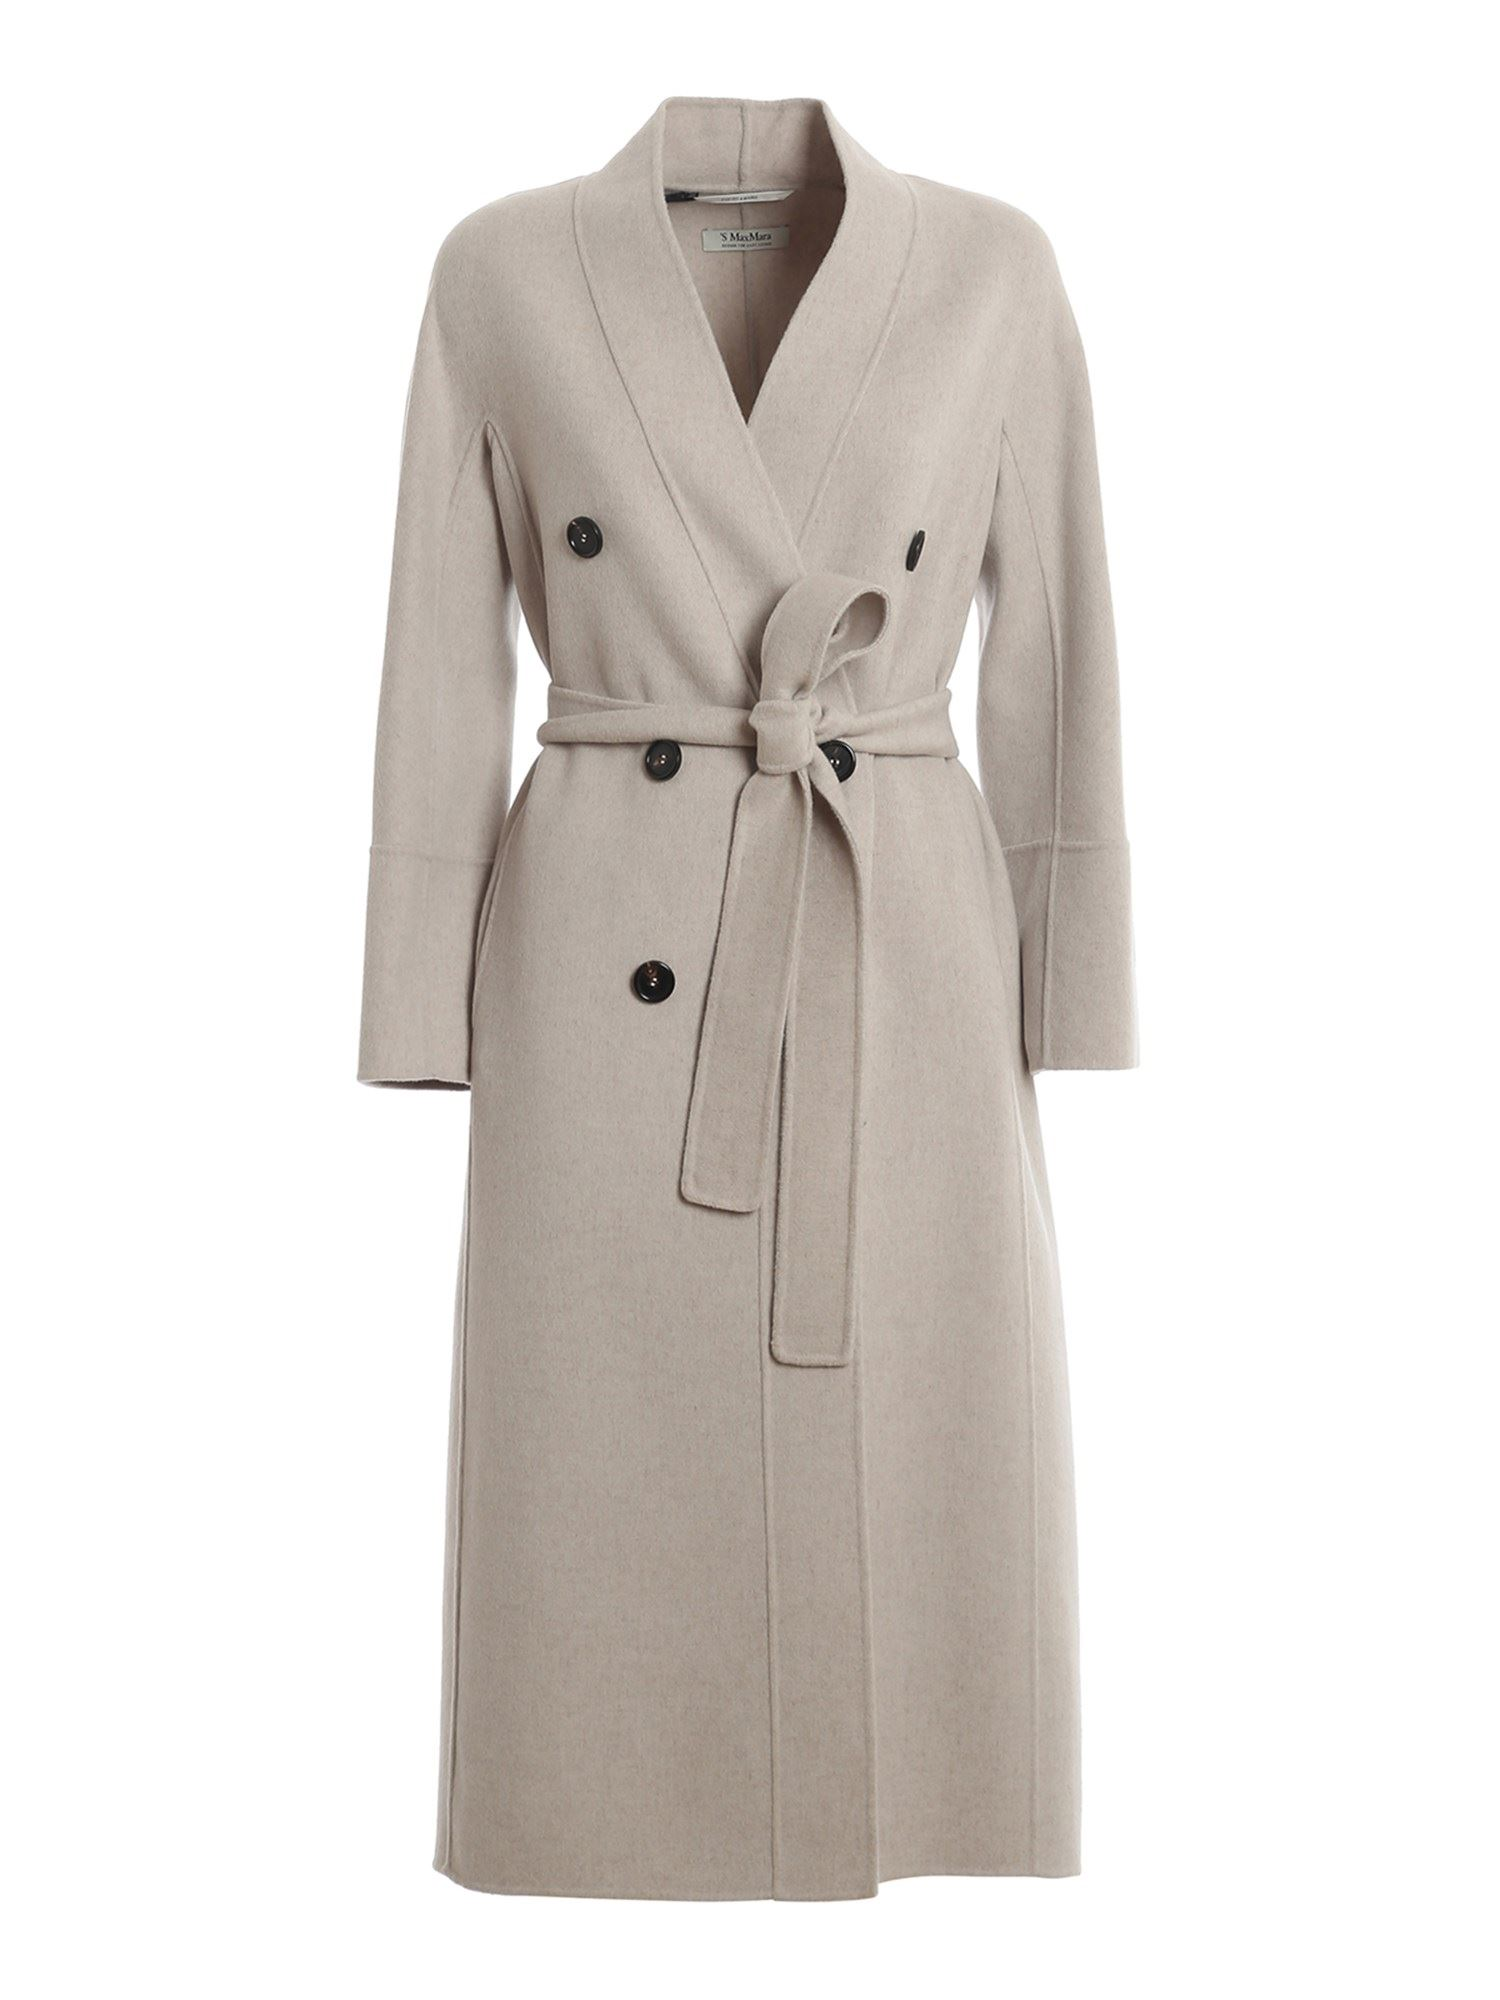 MAX MARA EMMA COAT IN GREY